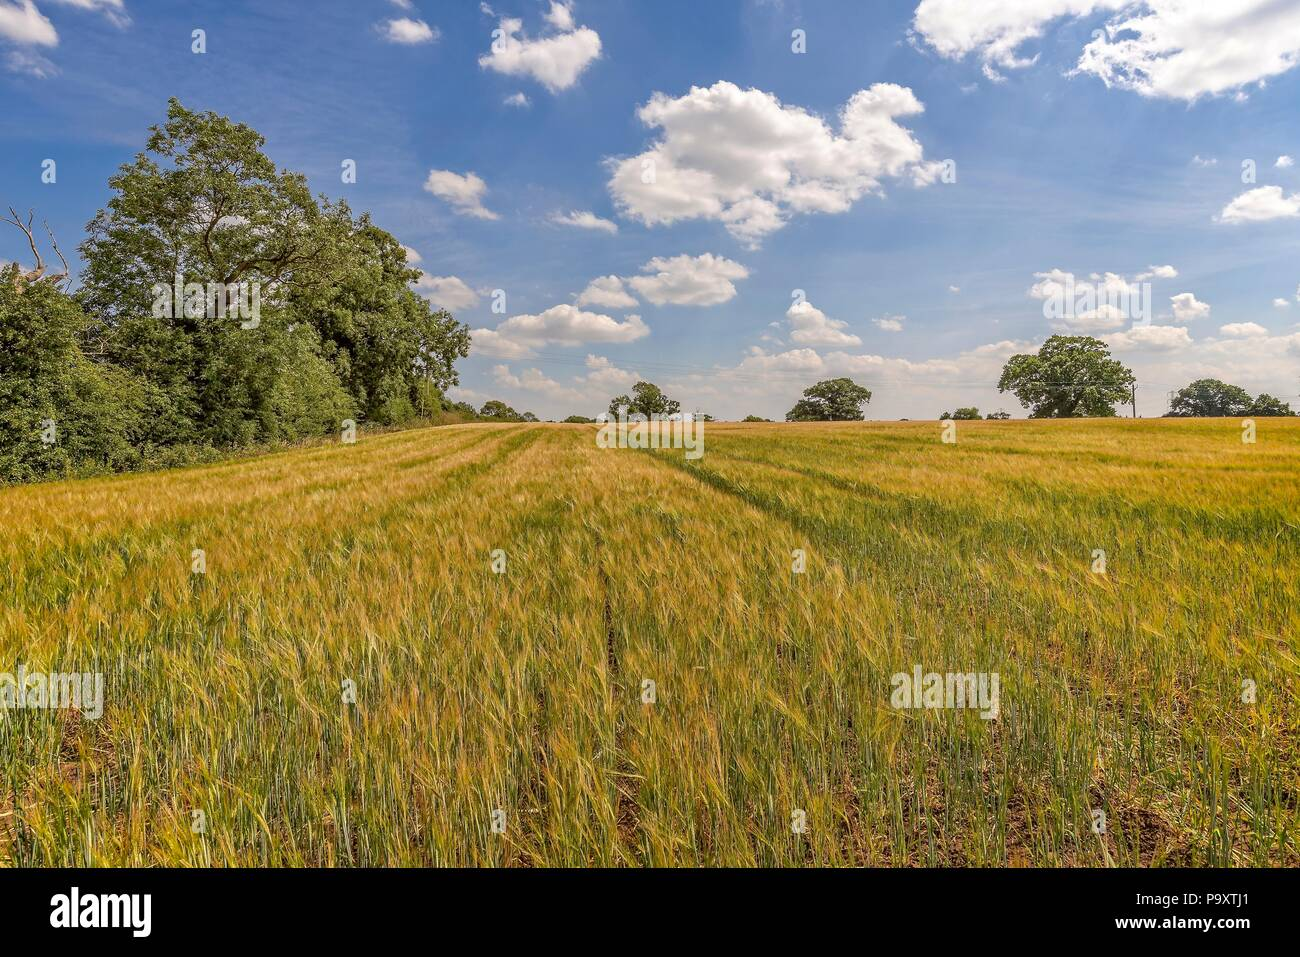 Striped field of ripening crops in the early afternoon with the sun overhead. - Stock Image